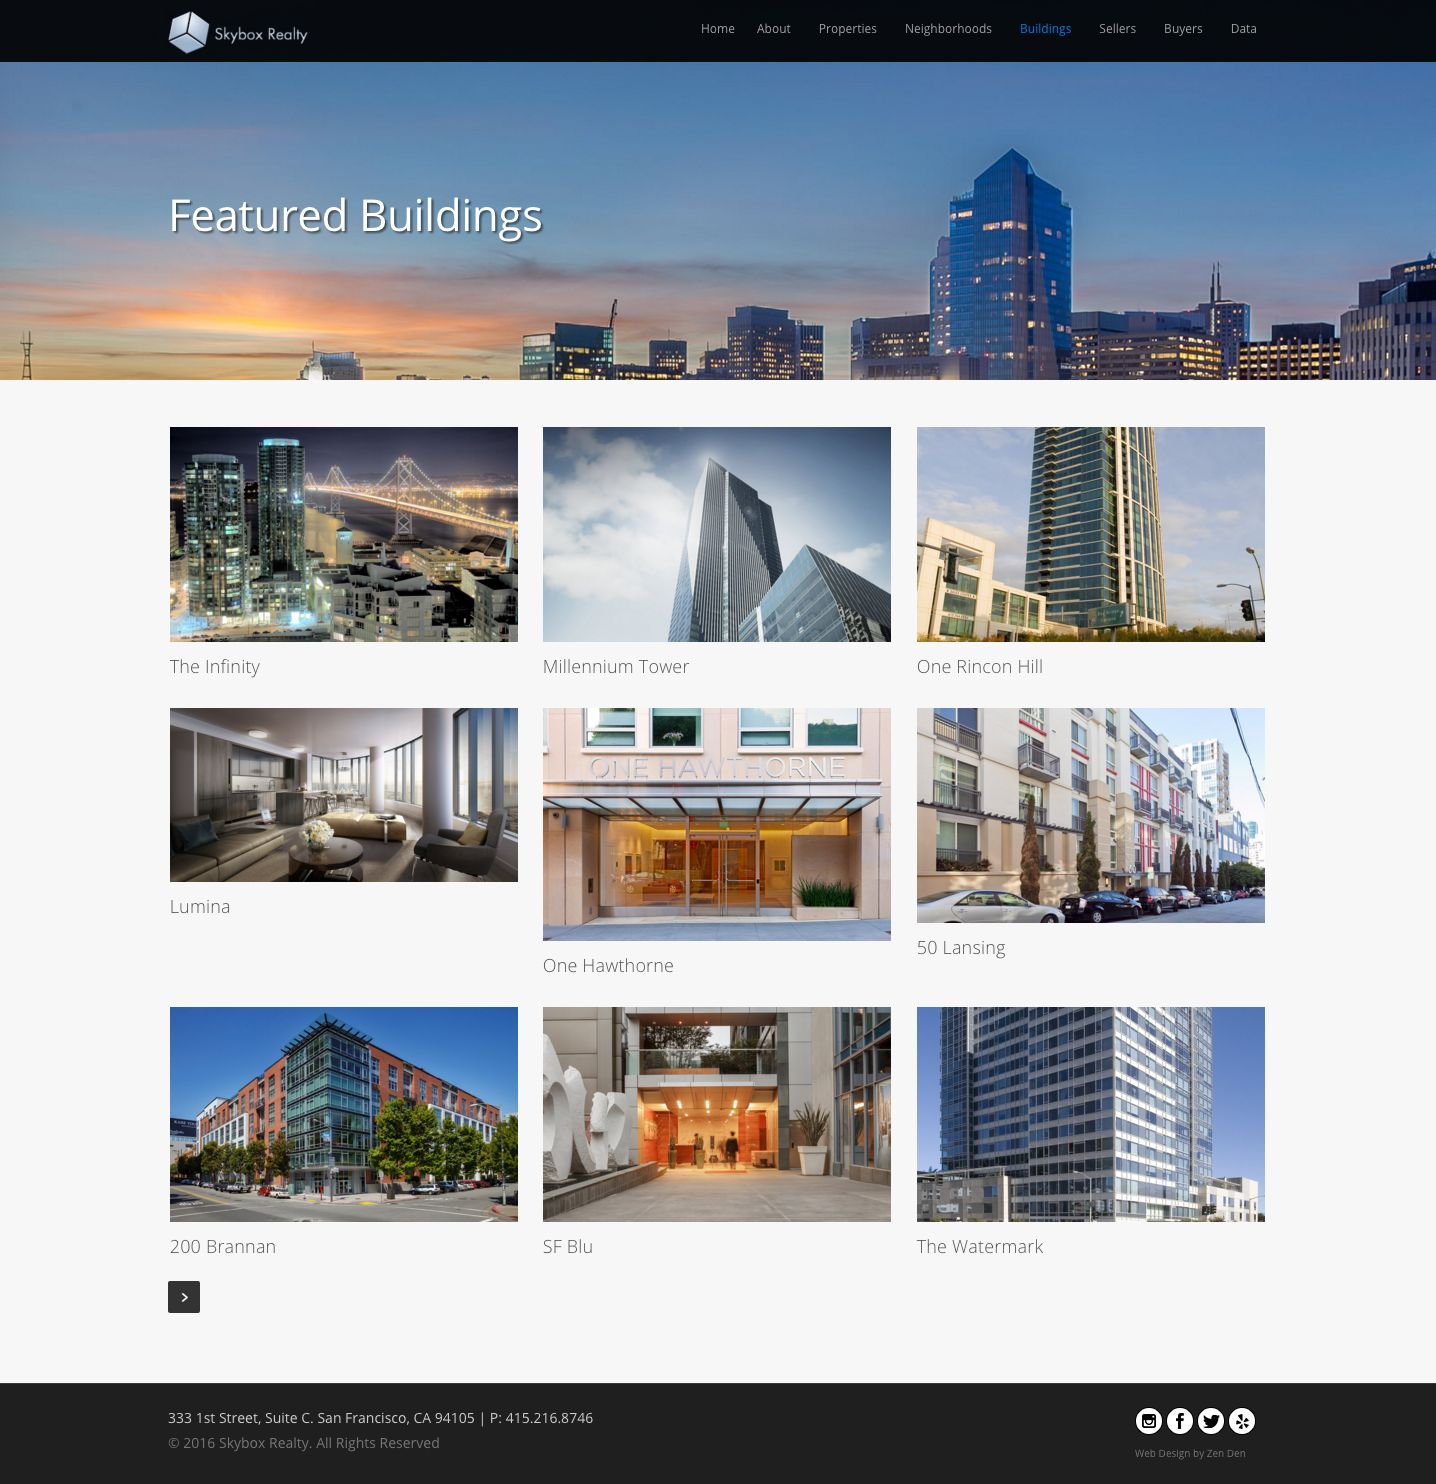 Real-Estate-Website-Design-Company-San-Francisco-Skybox-Realty-3.jpg